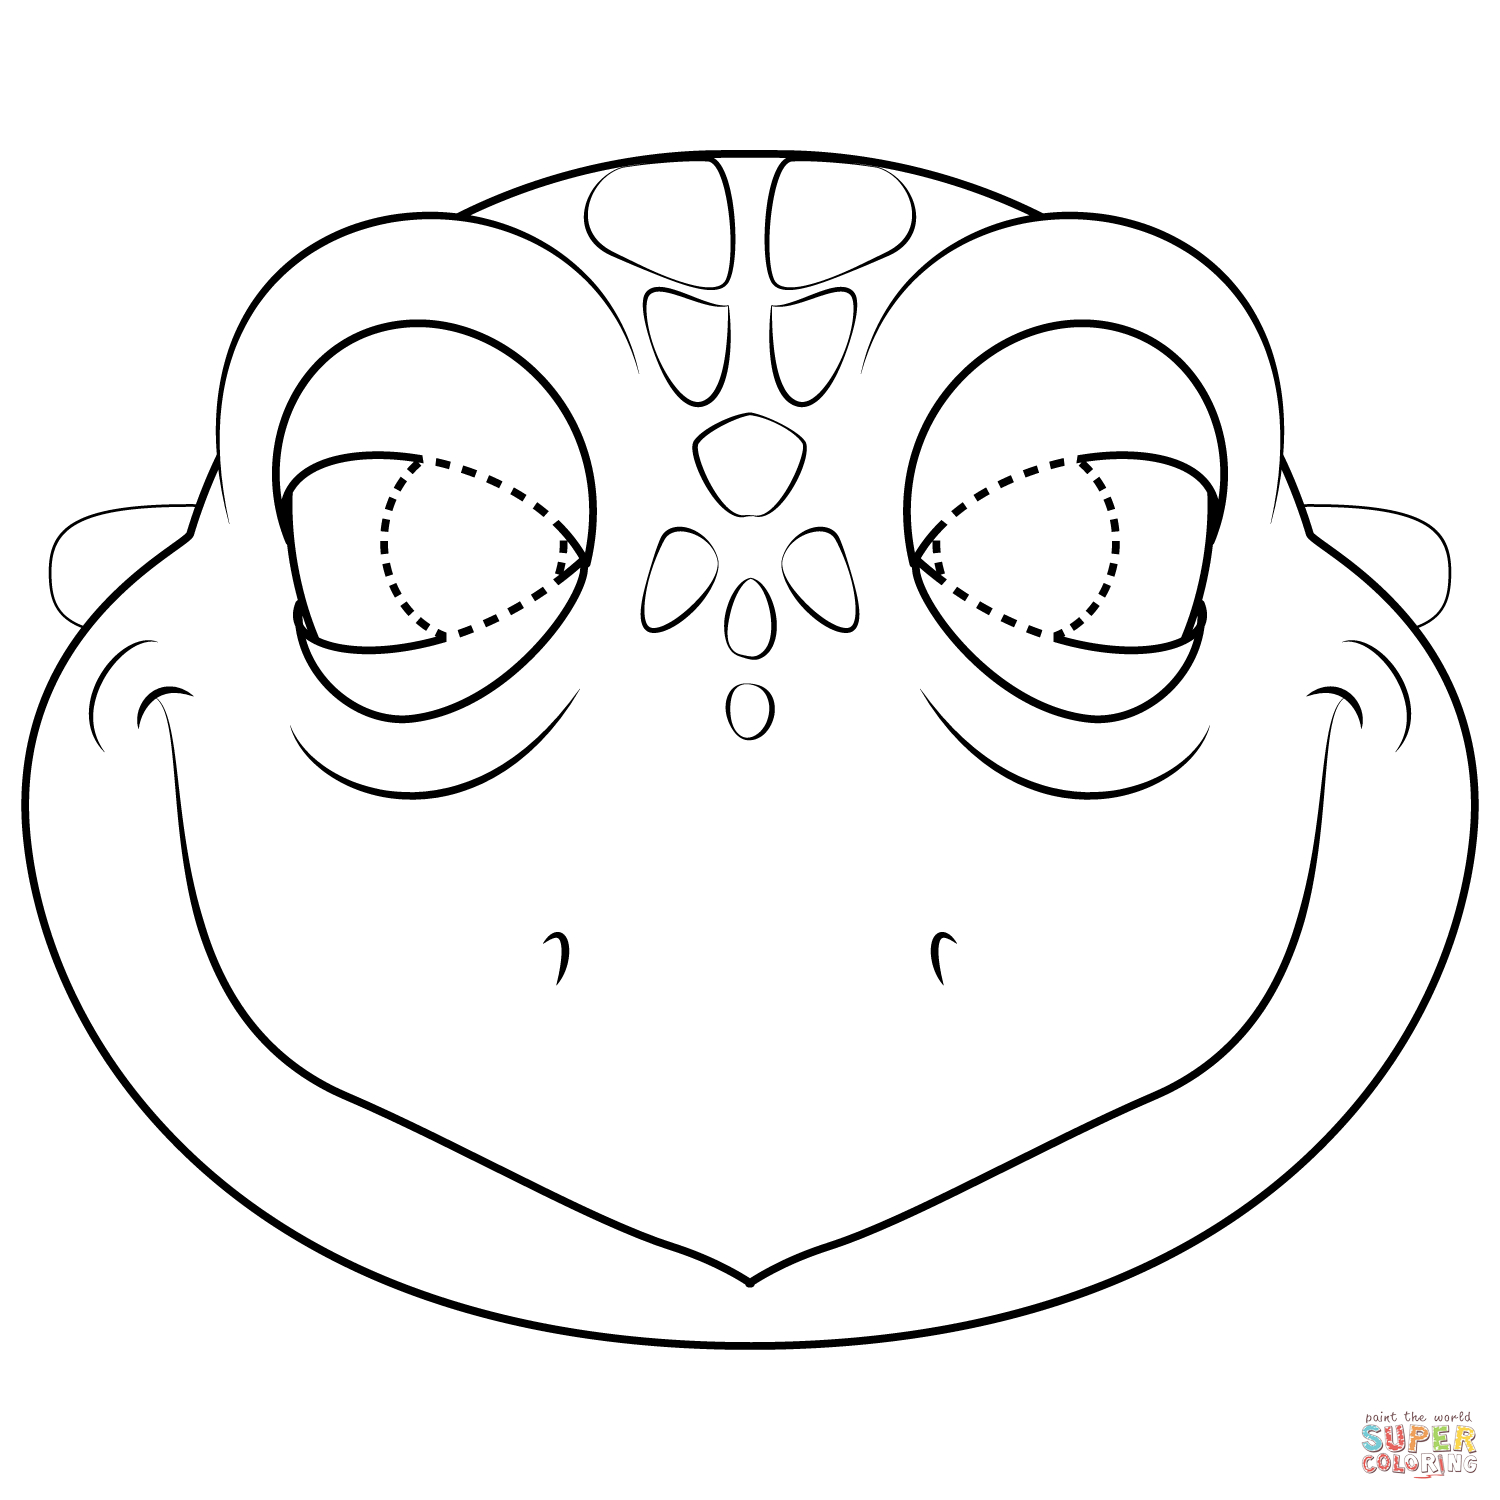 Turtle Mask Coloring Page | Free Printable Coloring Pages - Free Printable Lizard Mask